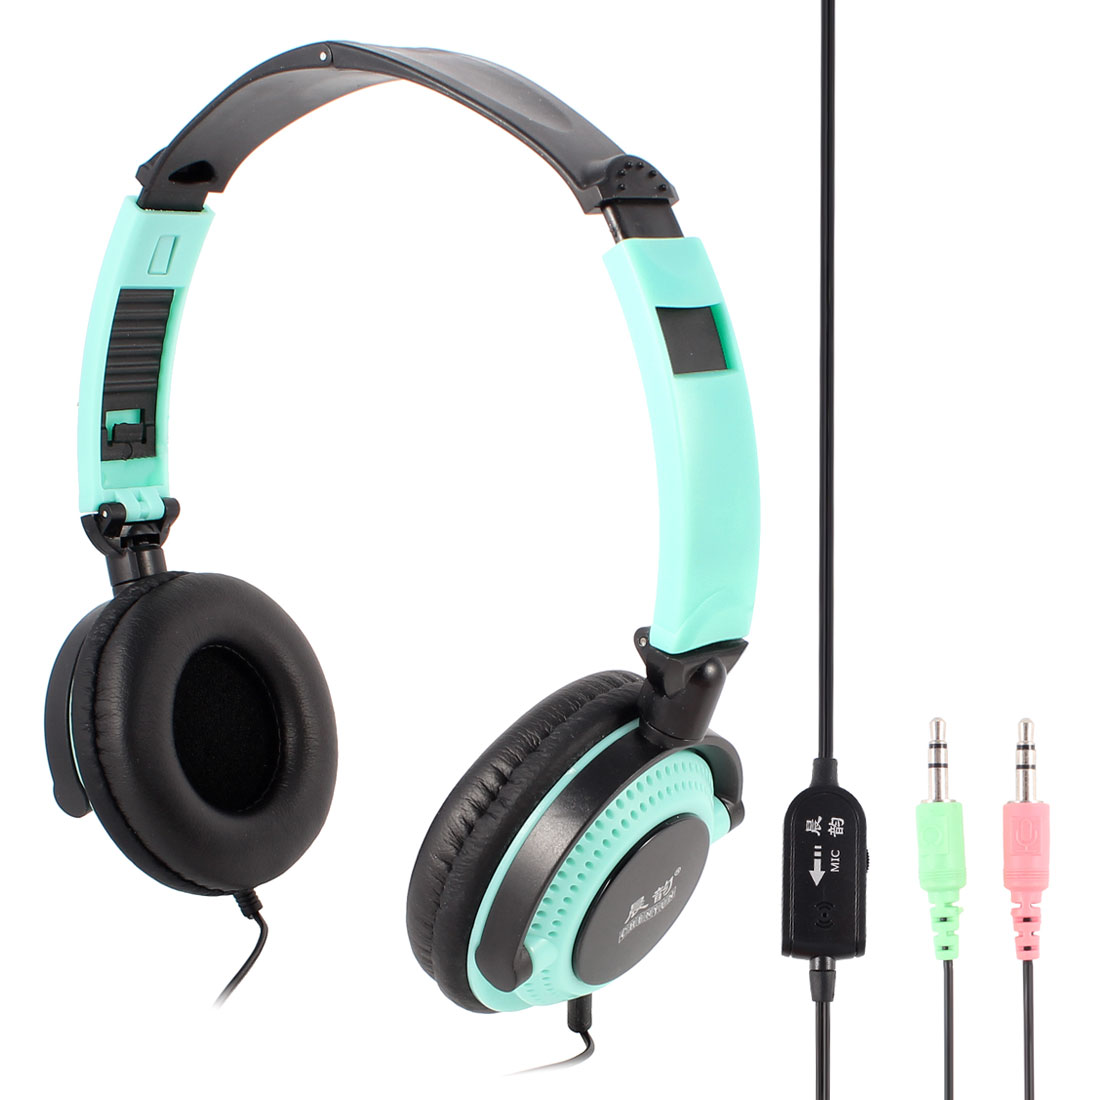 Adjustable Headband 3.5mm Connector Stereo Headphone Headset Black Cyan for PC Laptop